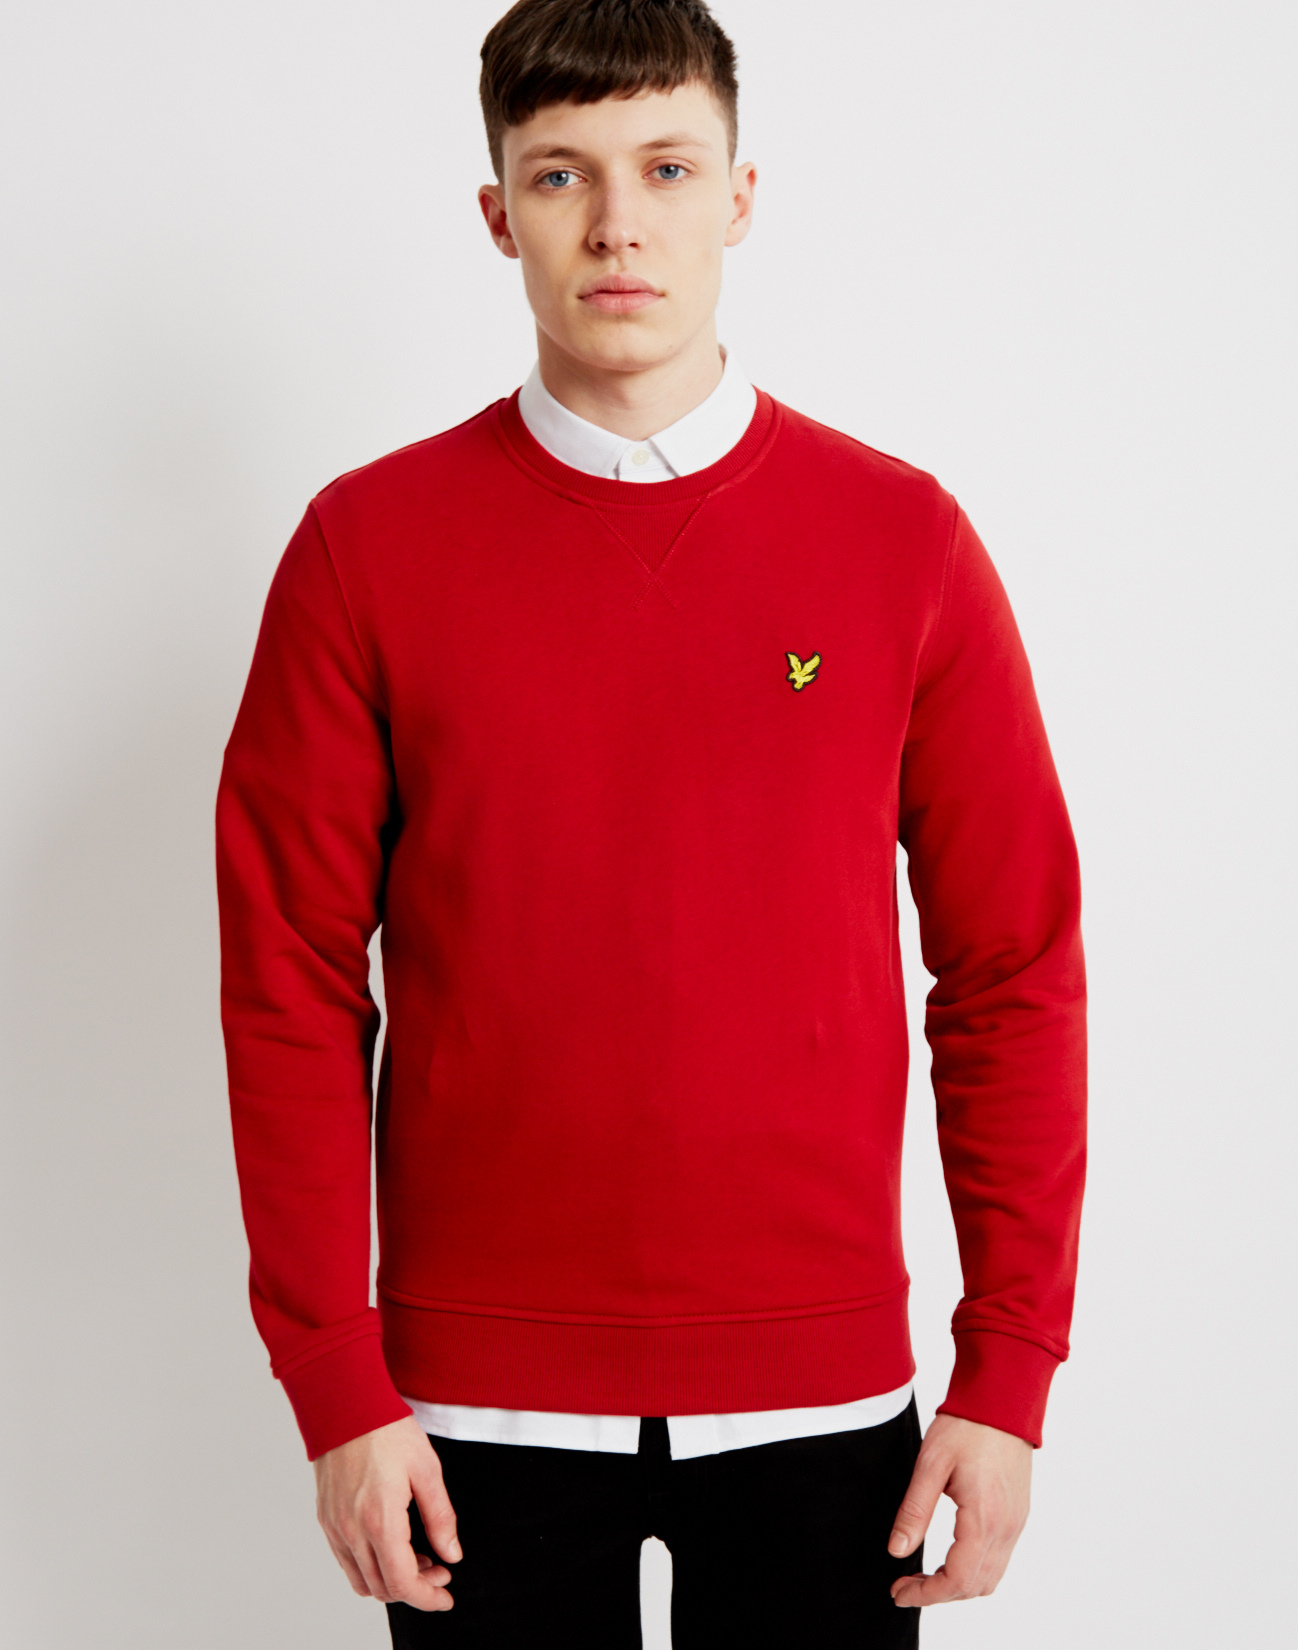 lyst lyle scott crew neck sweatshirt red in red for men. Black Bedroom Furniture Sets. Home Design Ideas